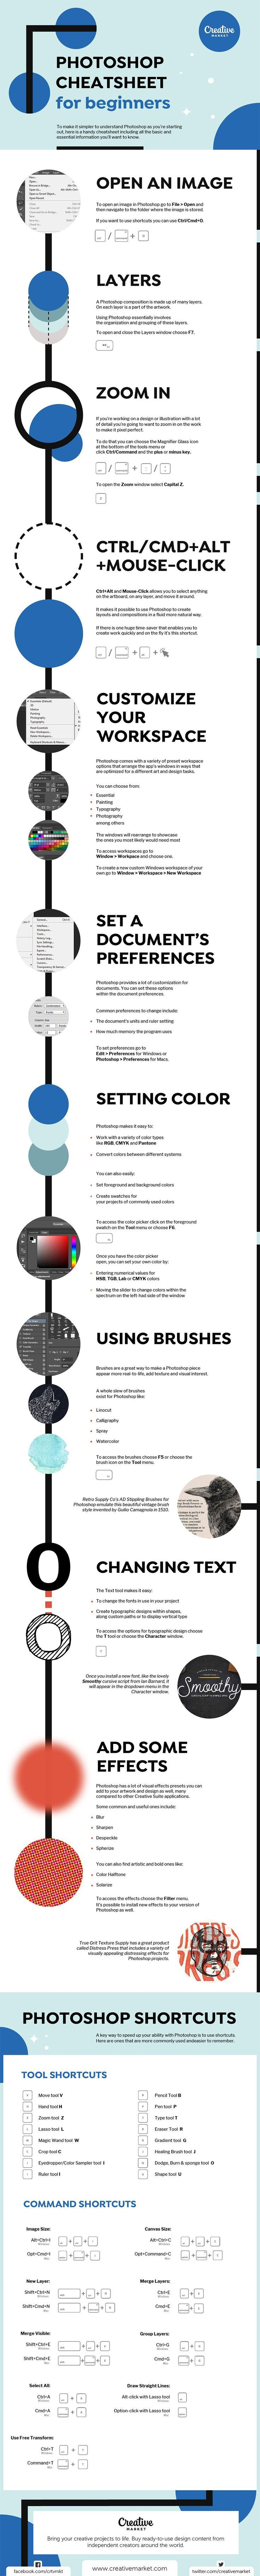 Want to Create Your Own Images? A #Photoshop Cheat Sheet for Beginners #Infographic #Design